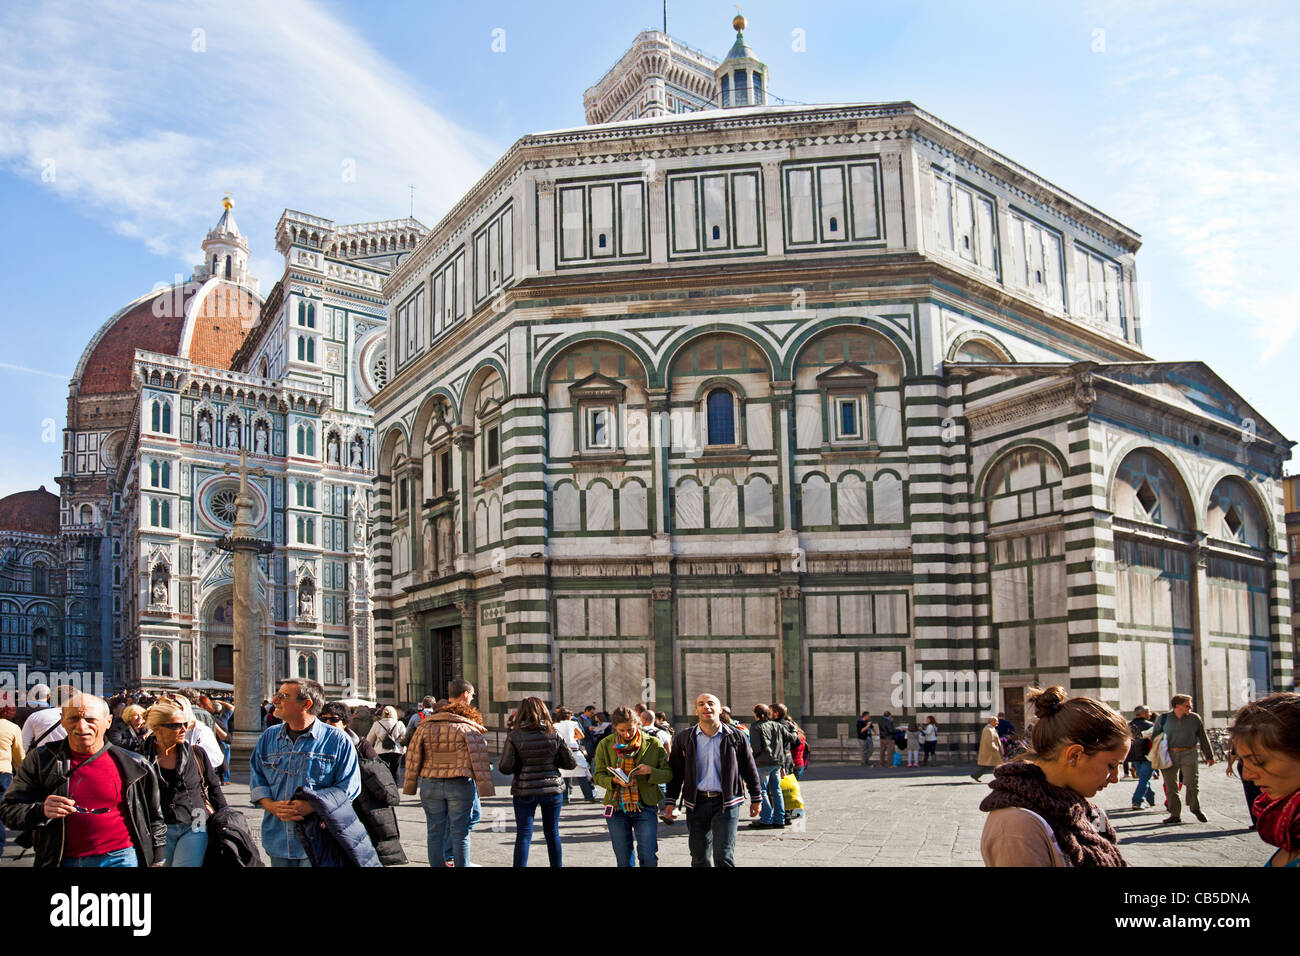 Tourists and locals outside the Battistero di San Giovanni, Baptistry of St John, in central Florence, Italy. Duomo - Stock Image